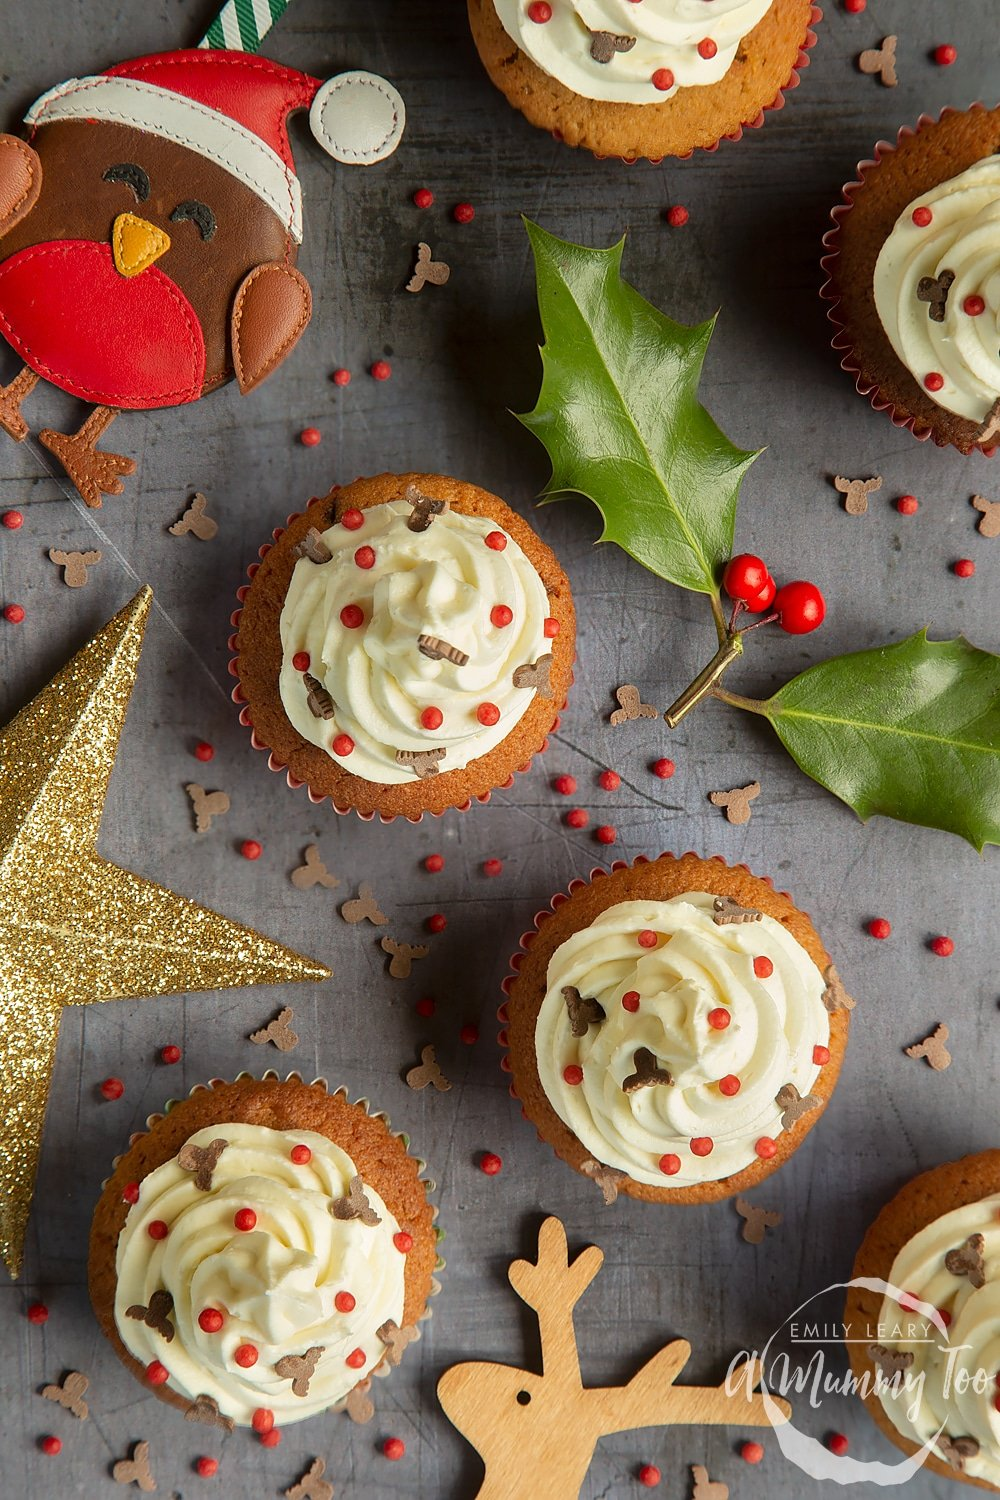 Adding festive sprinkles to the finished spiced Christmas cupcakes with marzipan frosting